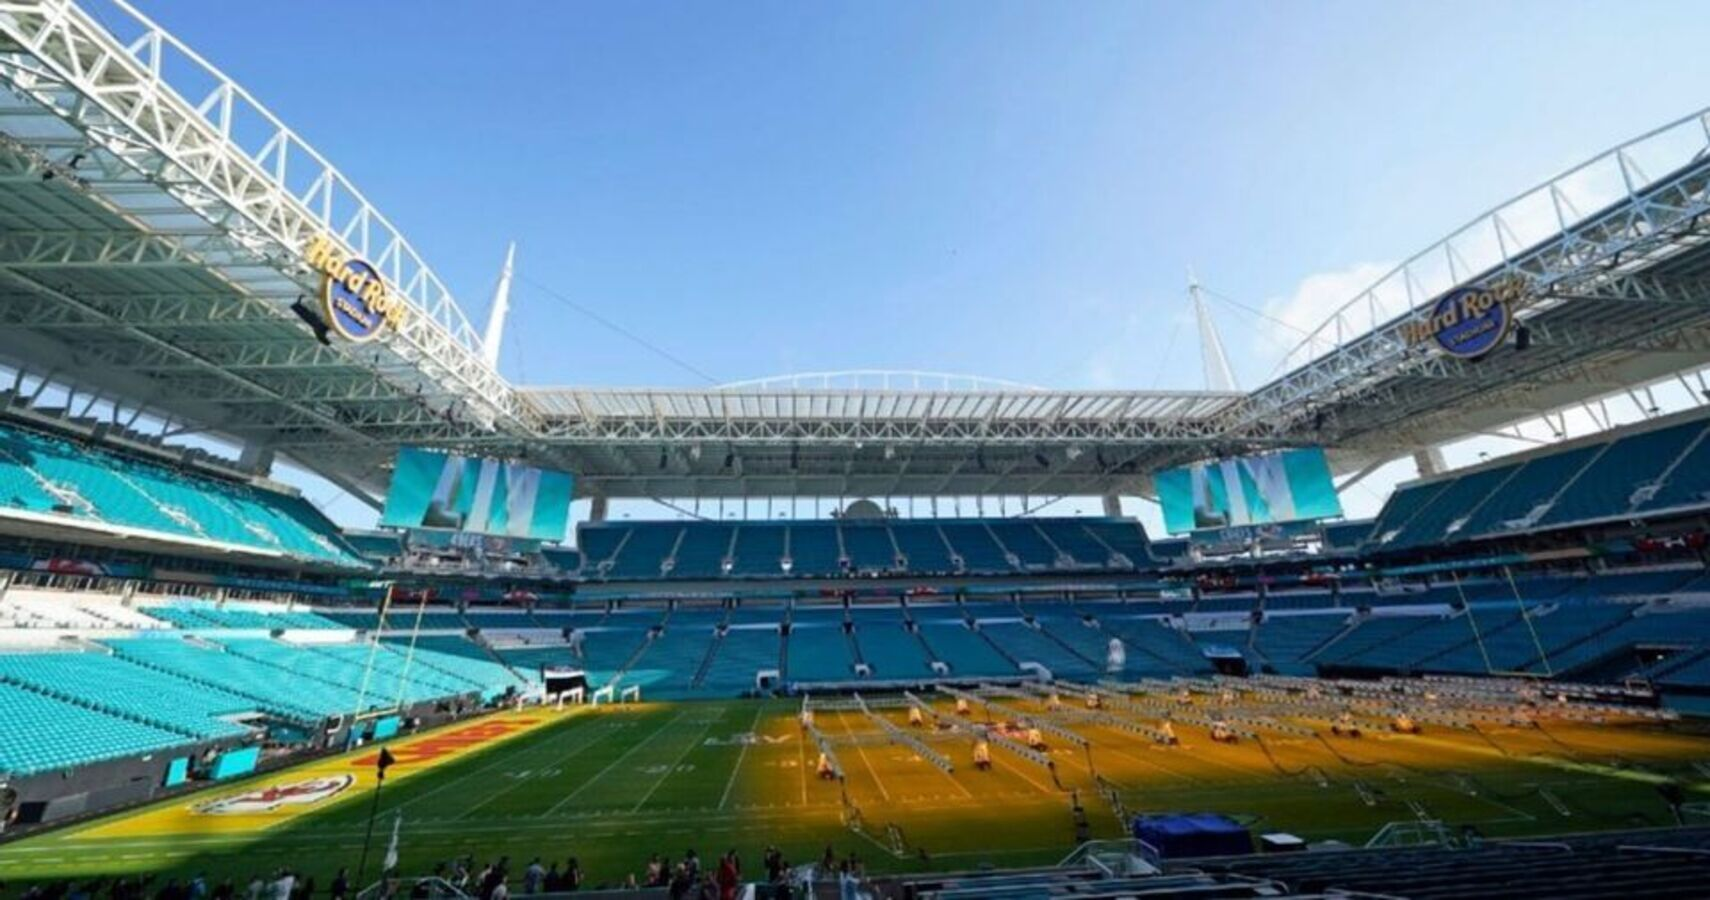 miami dolphins receive approval to have full 65,000